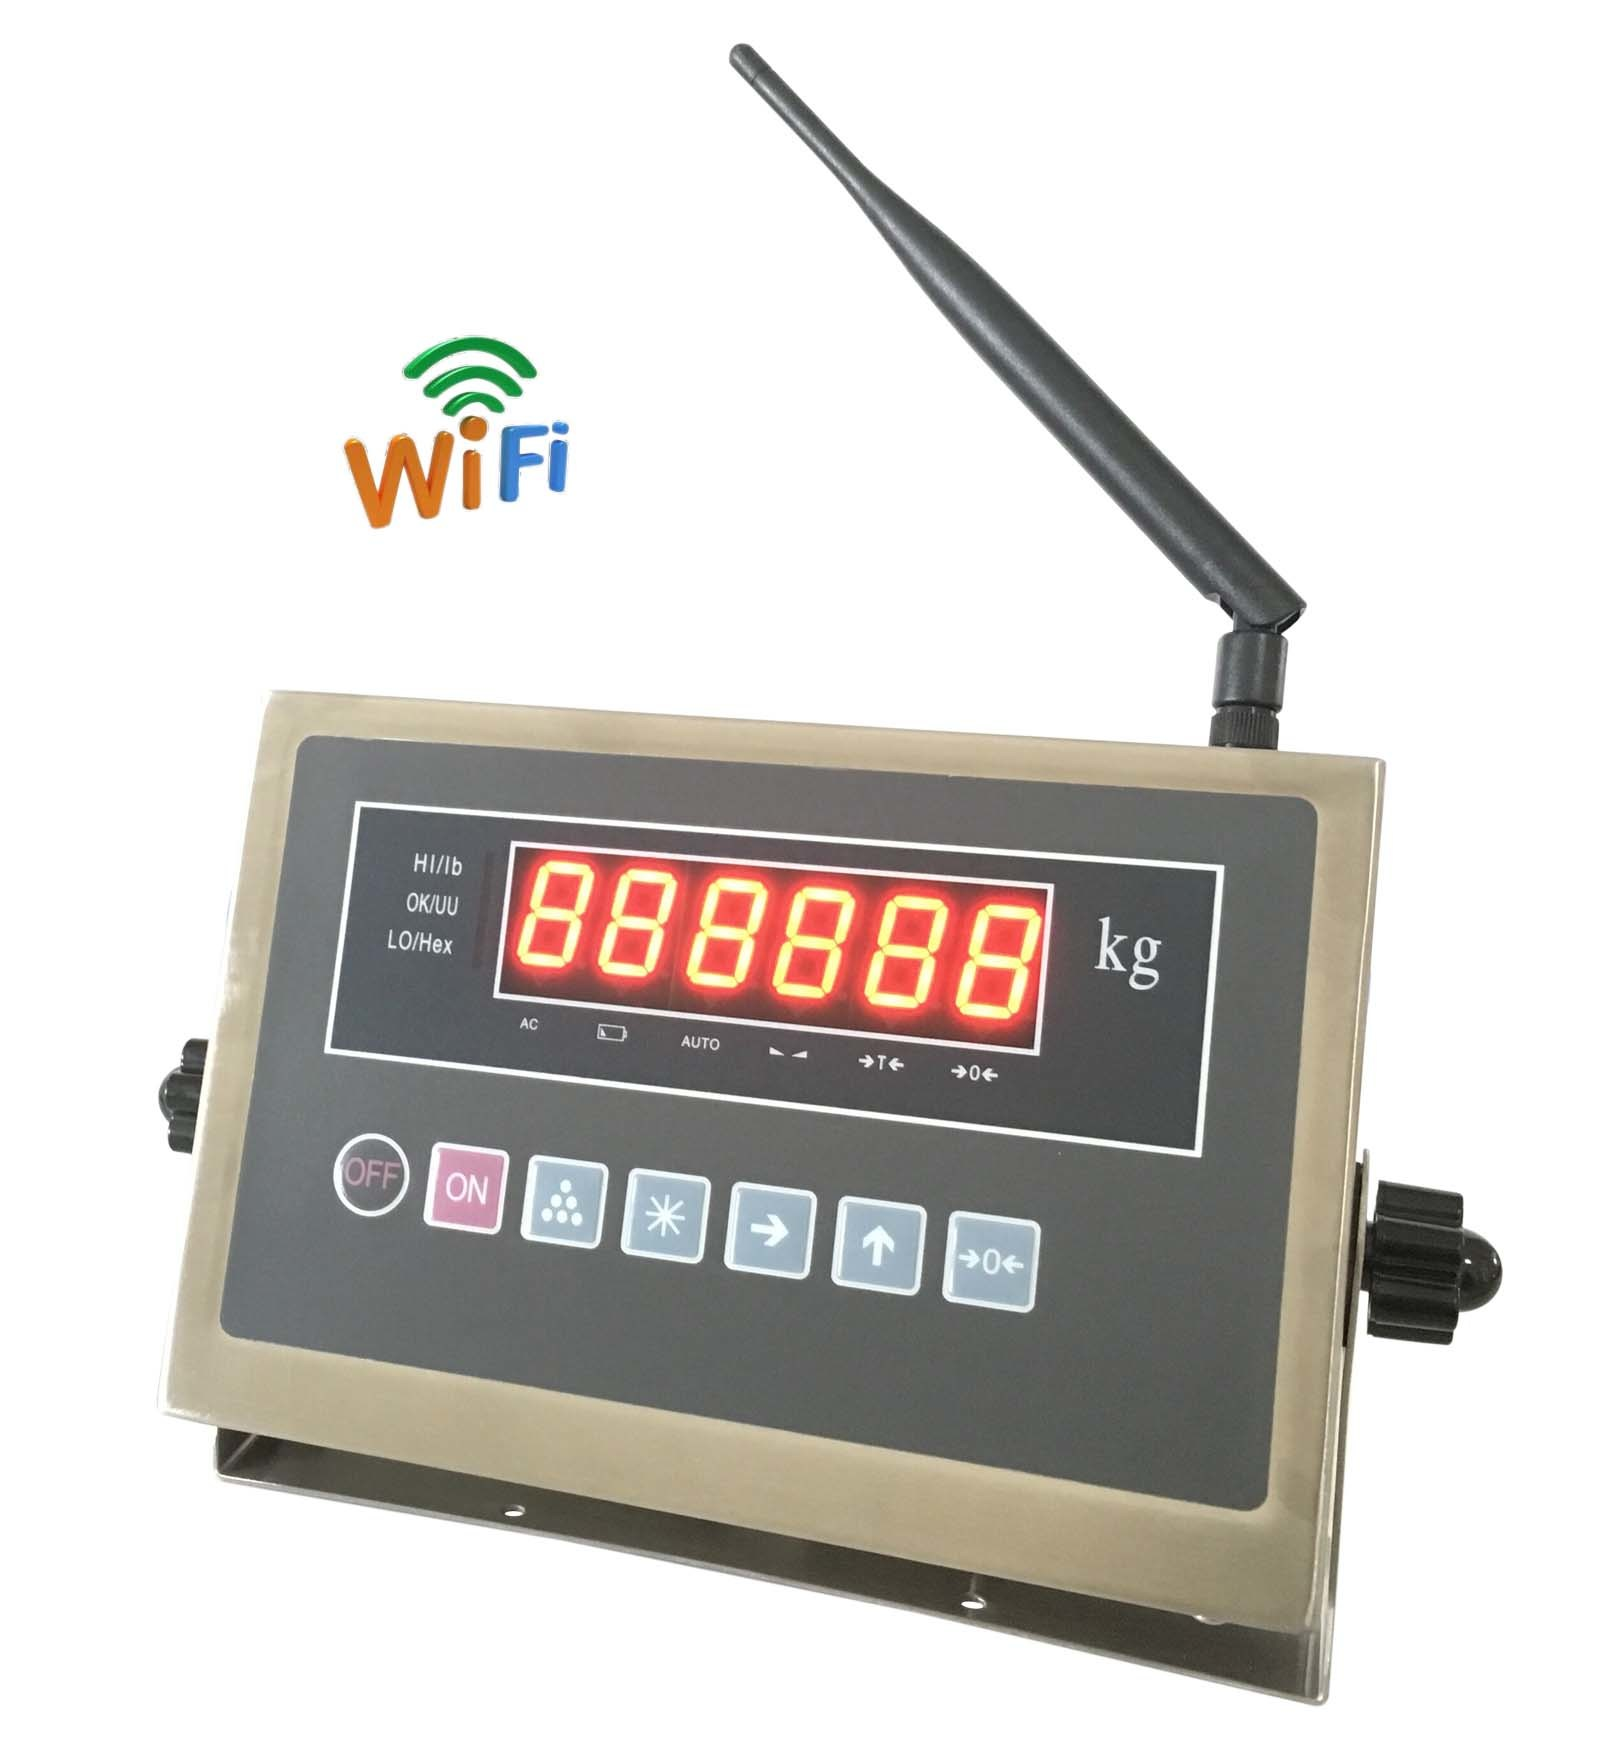 WiFi-Weighing Indicator for Weighing Scales (315A1-RB-WiFi)